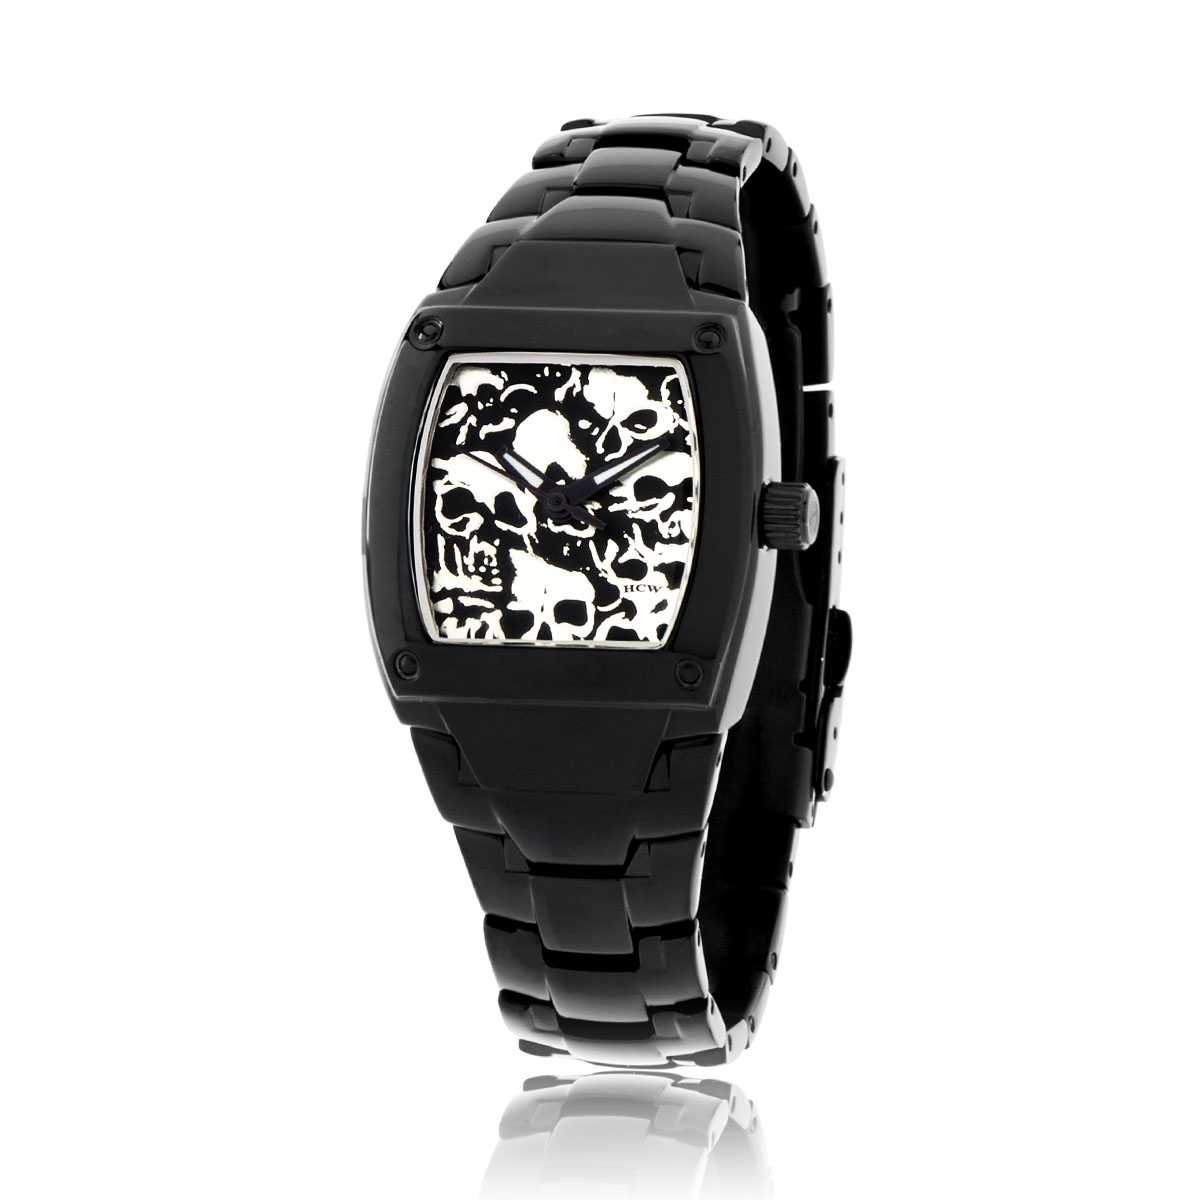 Lost Skulls Ladies Watch in Black Stainless Steel, Die Struck Dial, designed by Steve Soffa